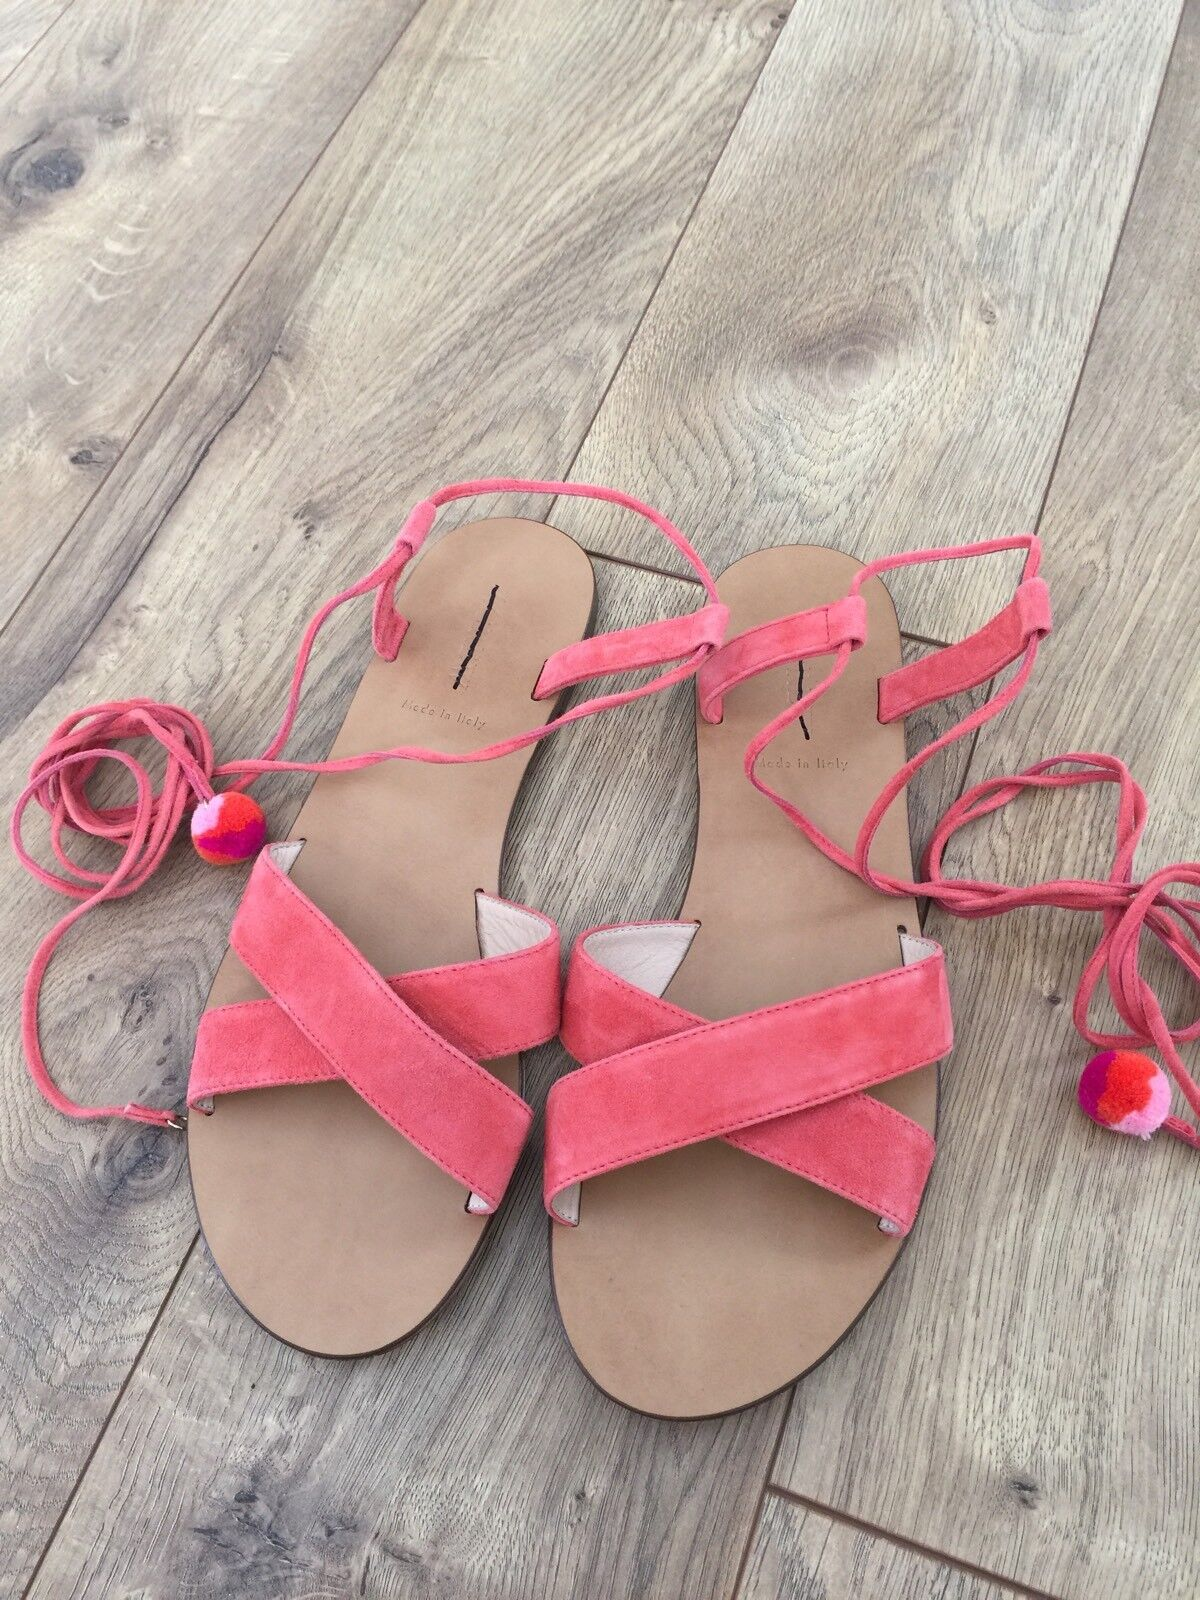 J.Crew F9680  138 Suede Pom-Pom Sandals Lace Up In Coral MADE IN ITALY 9 NEW